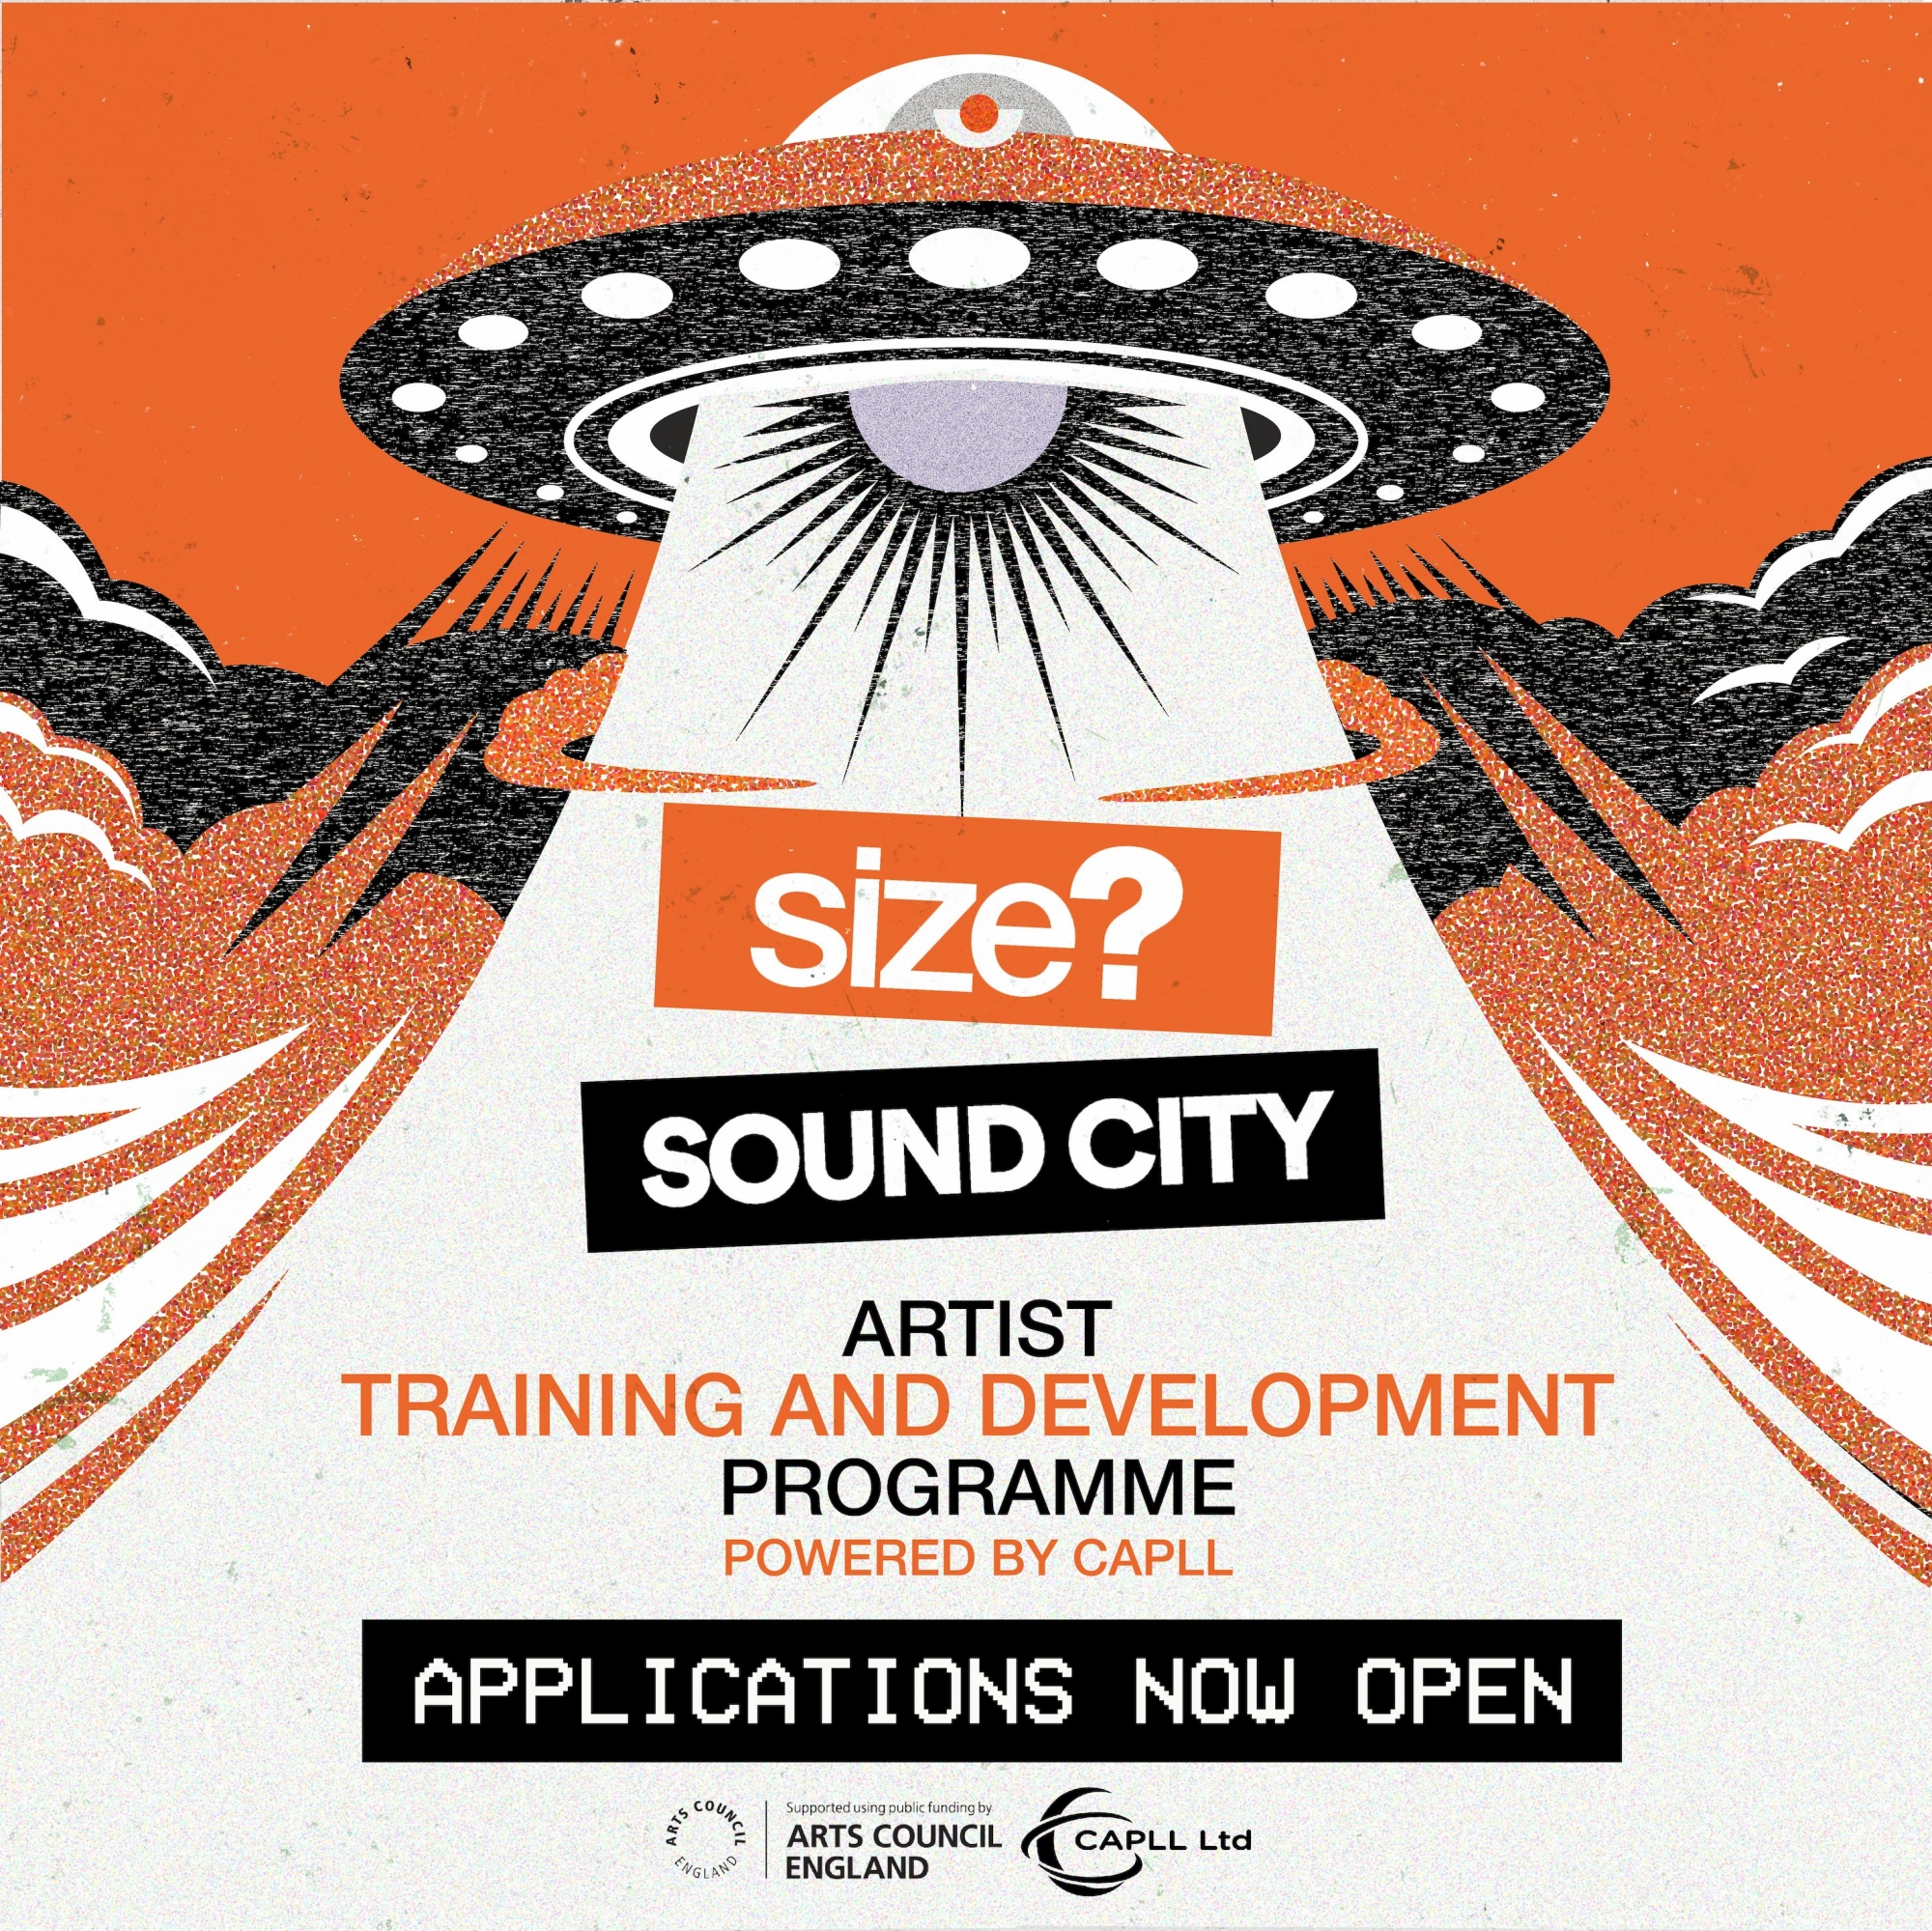 size? Artist Training and Development Programme Powered By CAPLL